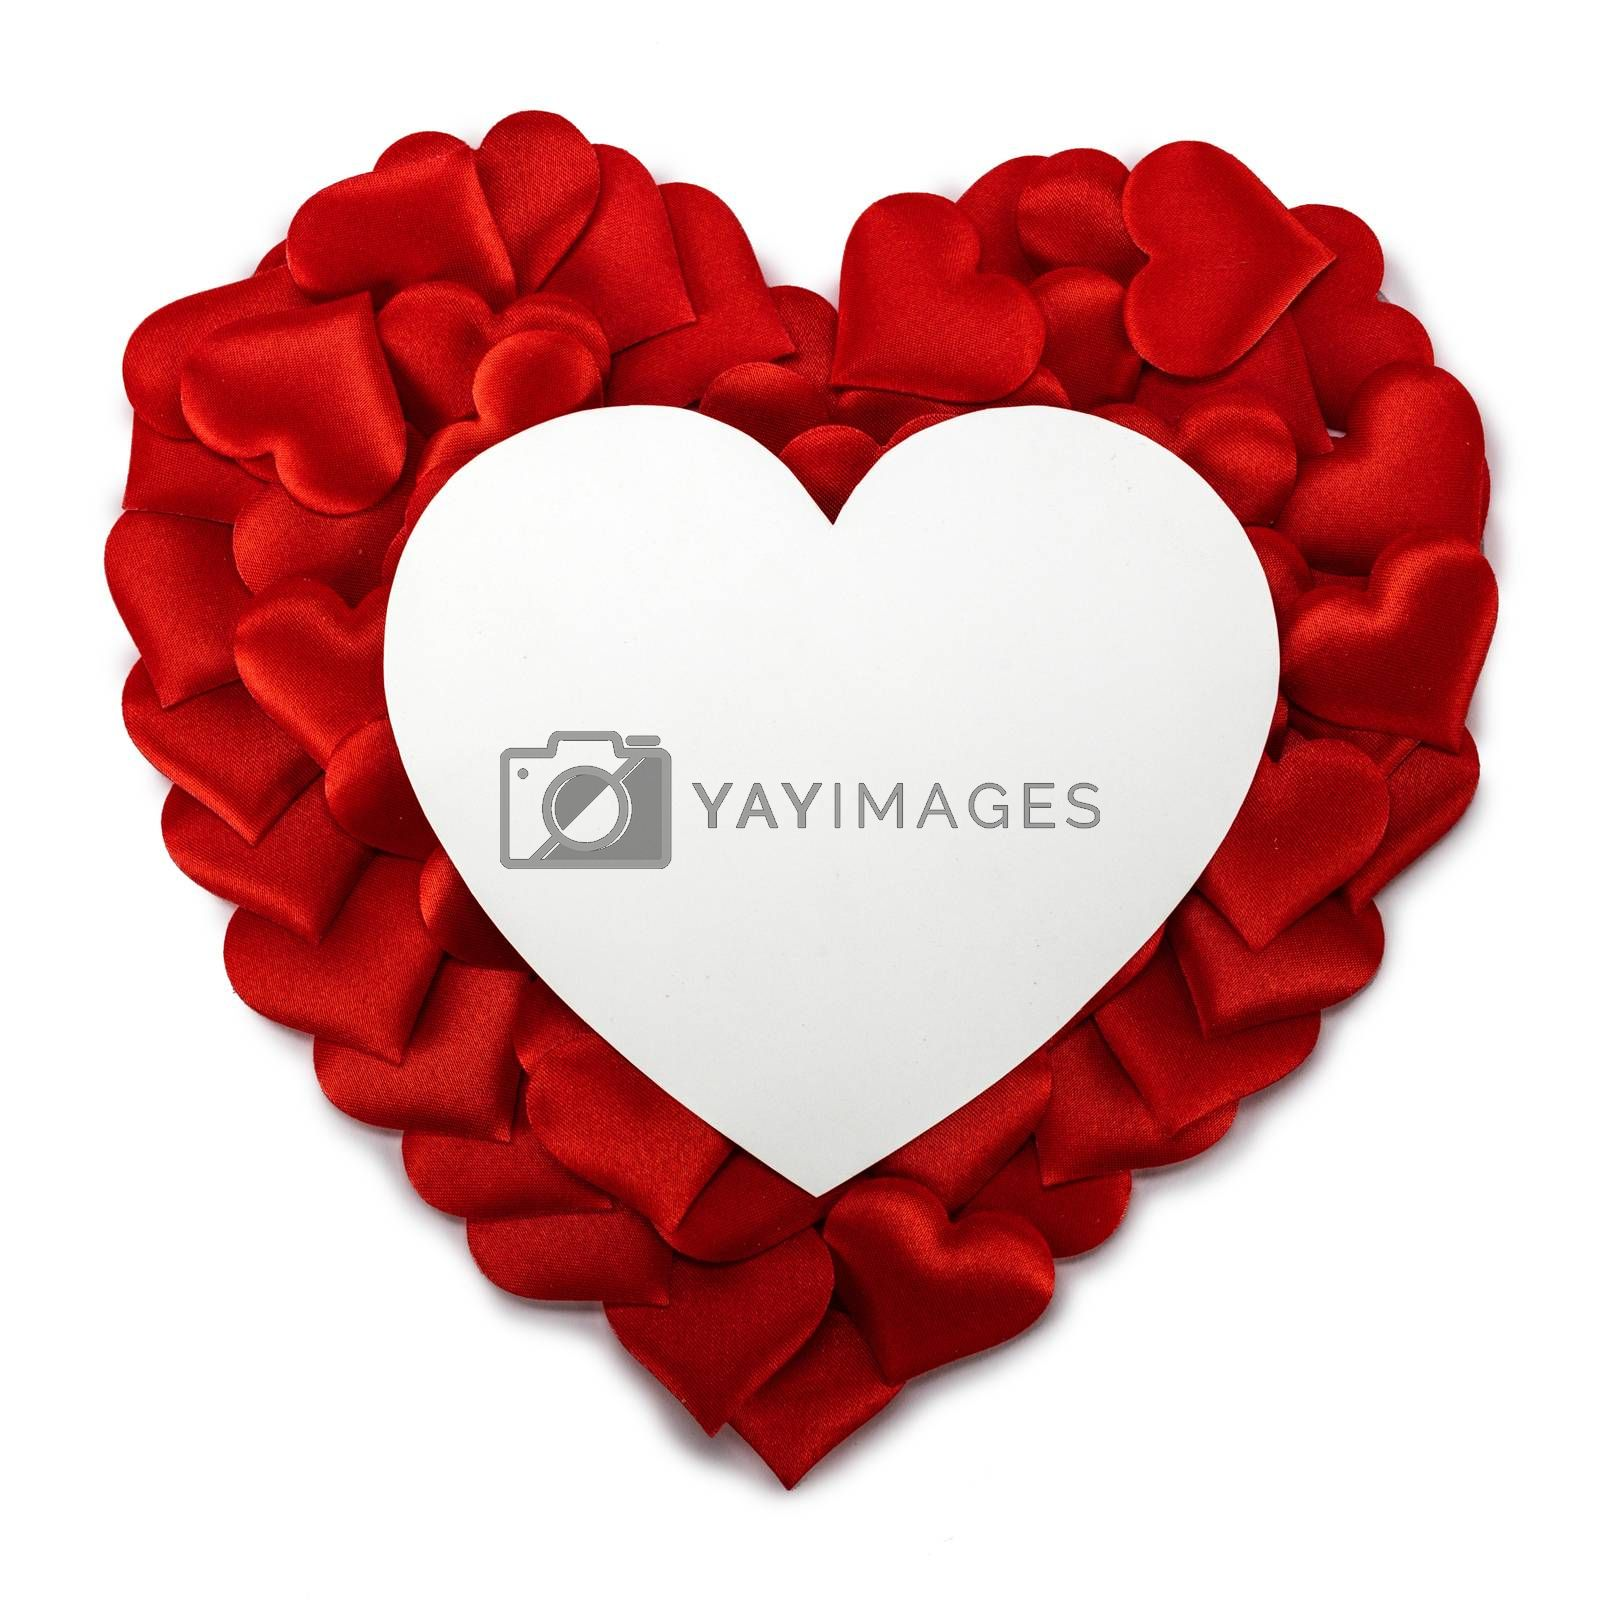 Valentine's day many red silk hearts and heart shaped card isolated on white background, love concept